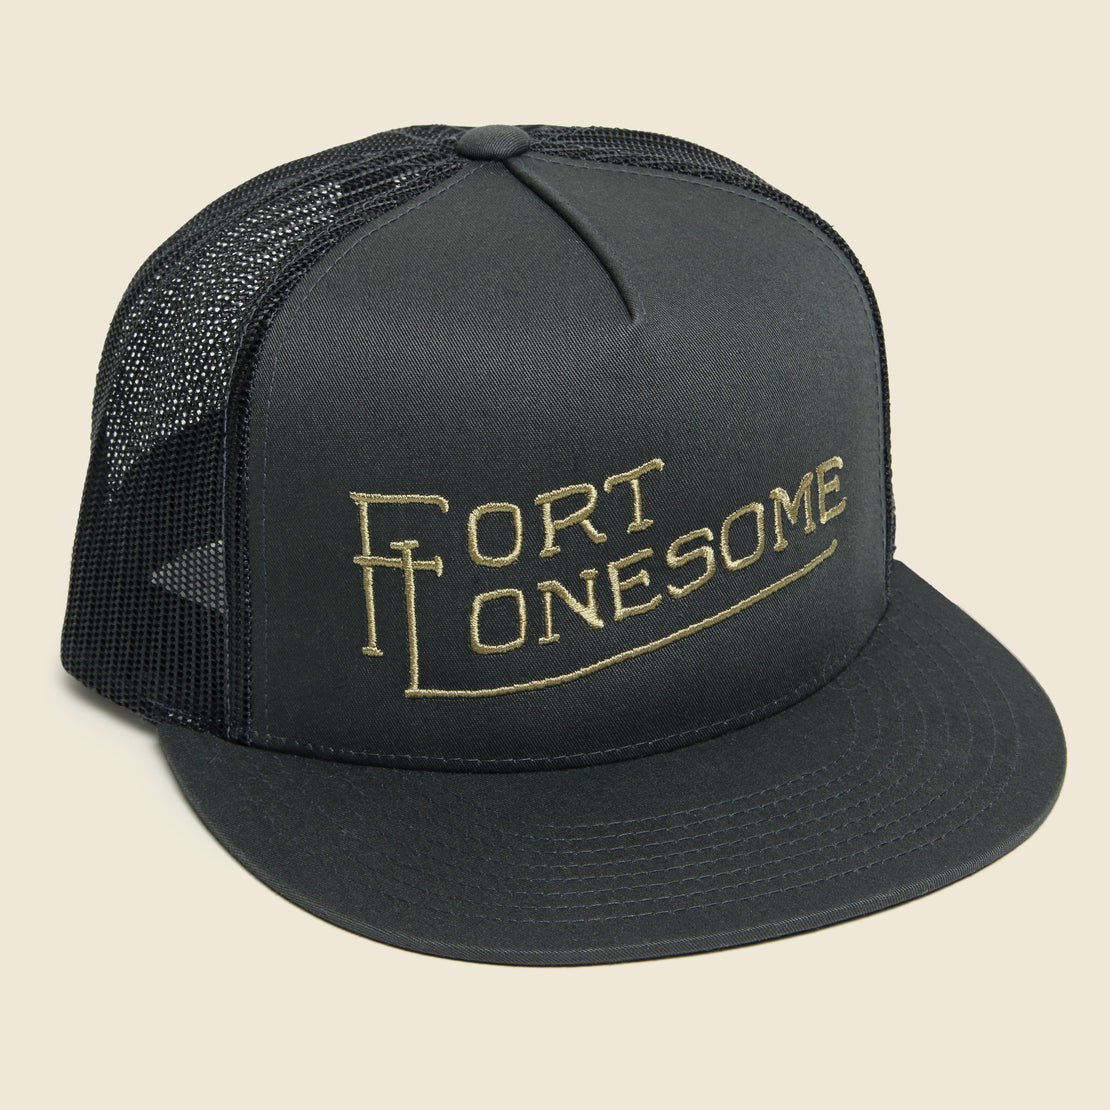 Fort Lonesome Embroidered Trucker Hat - Charcoal